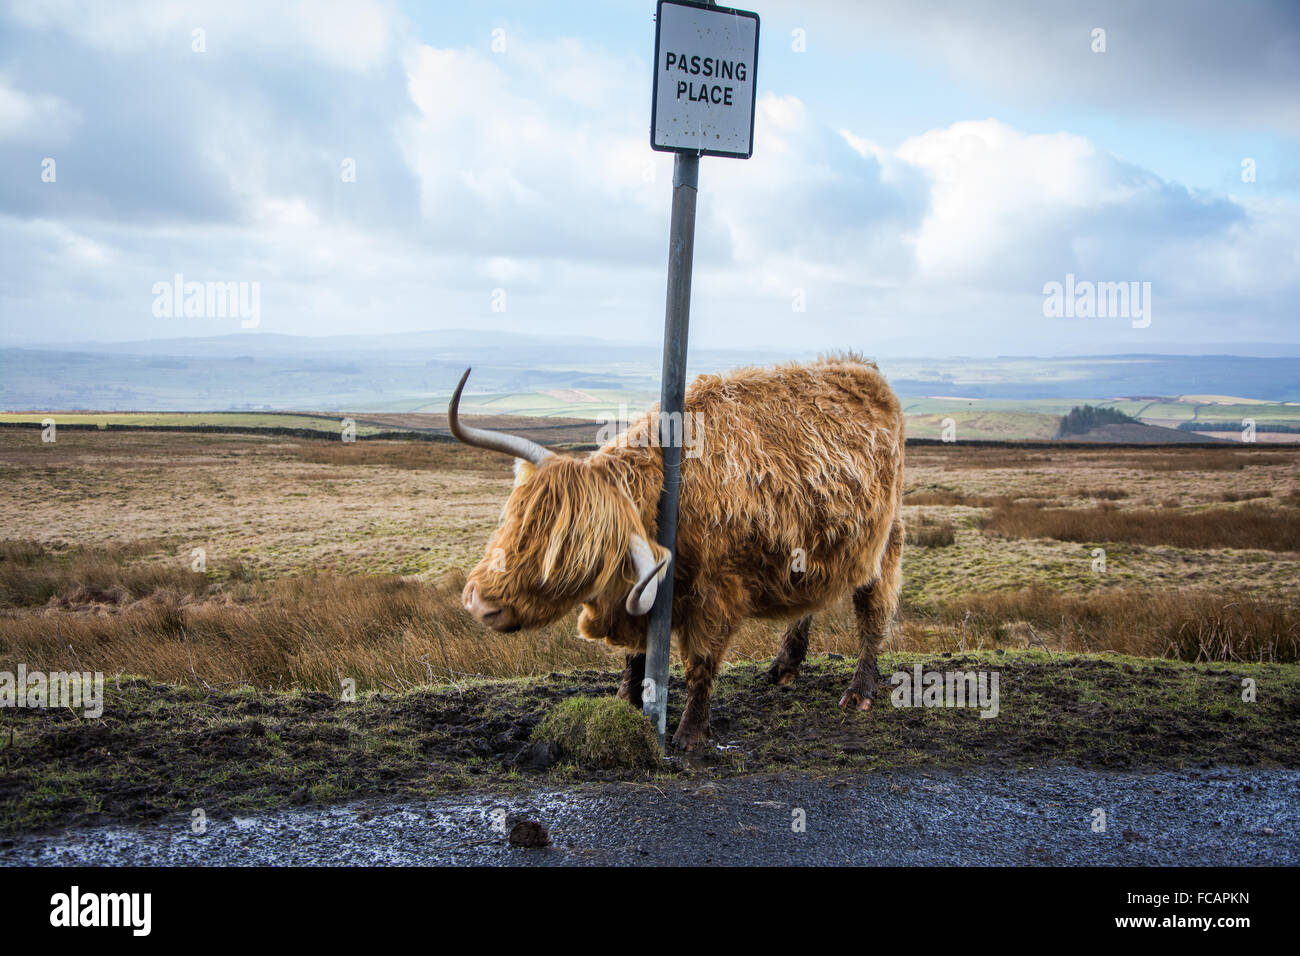 Highland Cow near Malham in the Yorkshire Dales - Stock Image